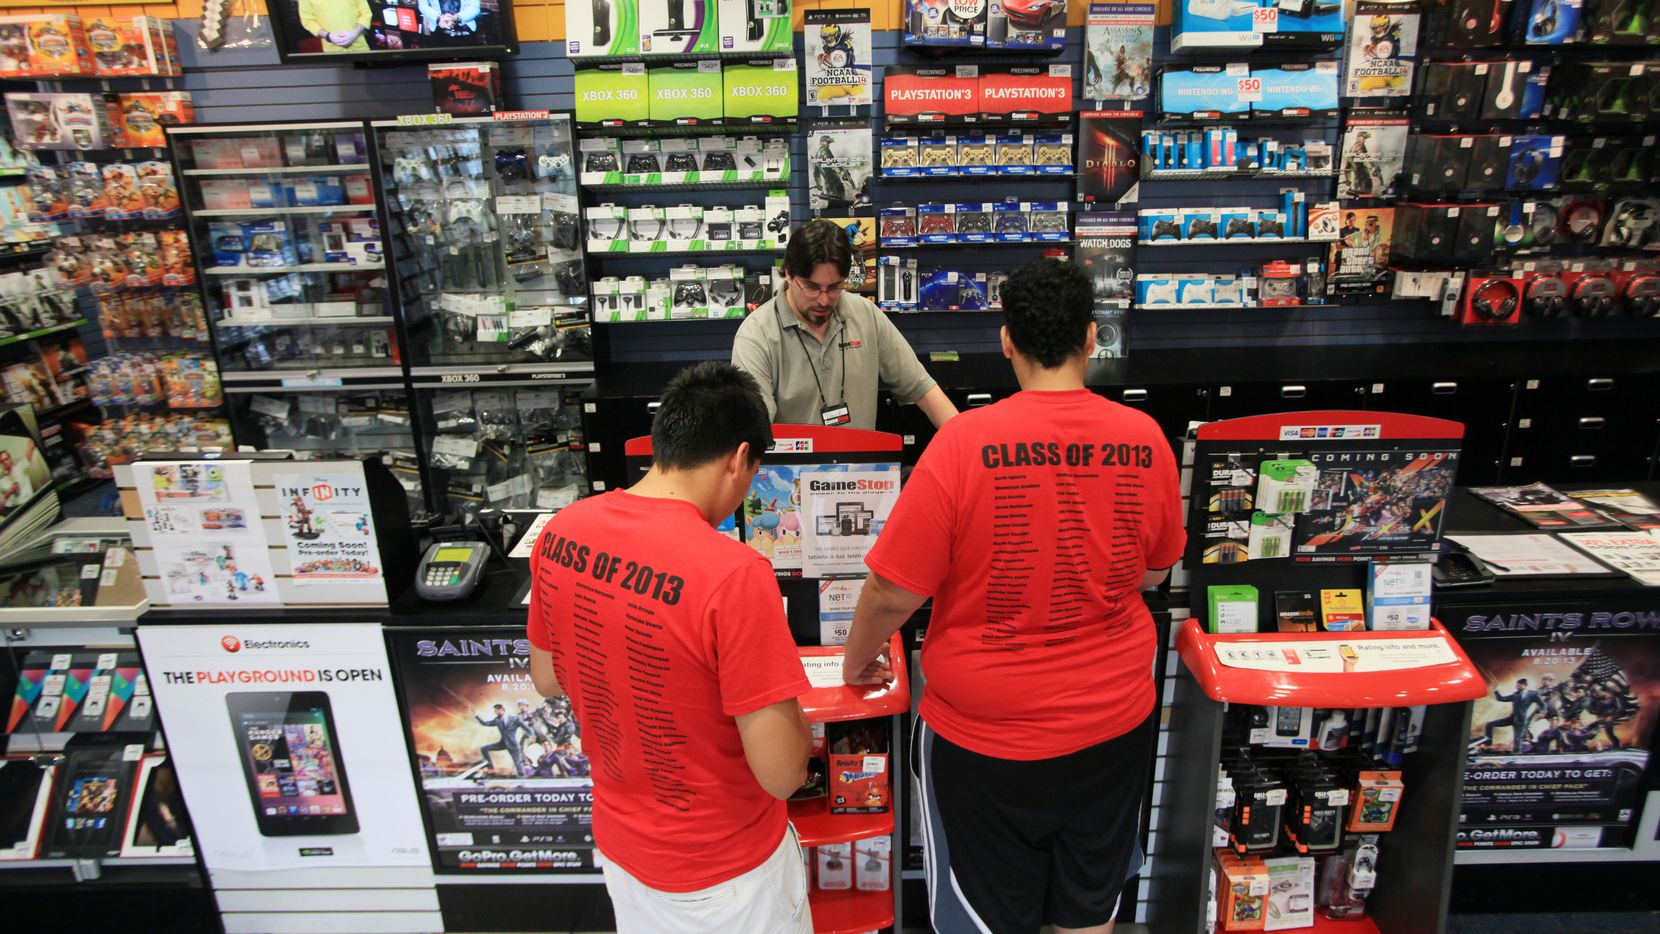 GameStop manager David Green, center, helps two customers at the store inside NorthPark Center, on May 23, 2013 in Dallas.